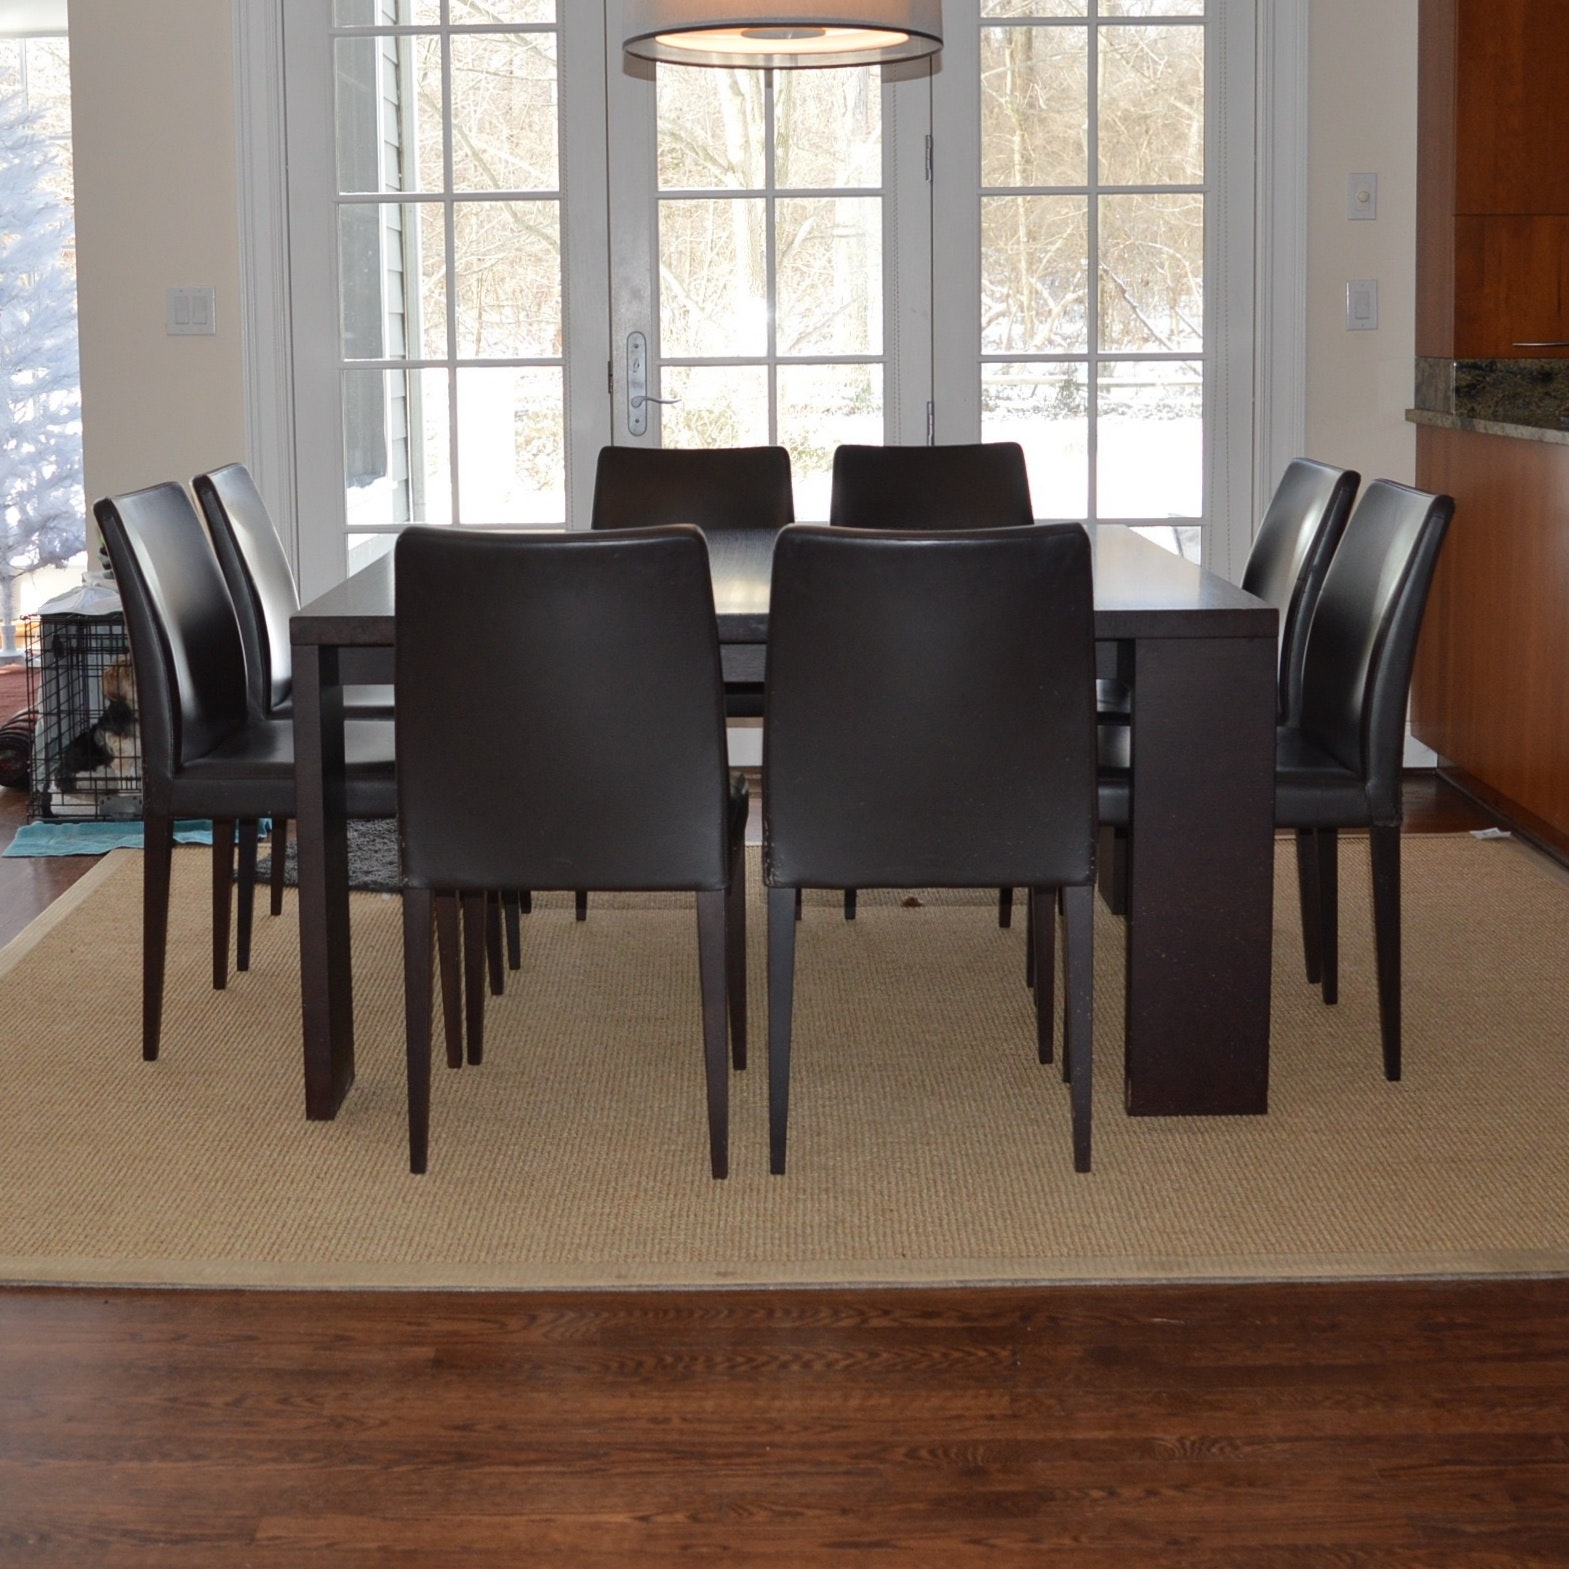 Italian Dining Table and Eight Leather Chairs